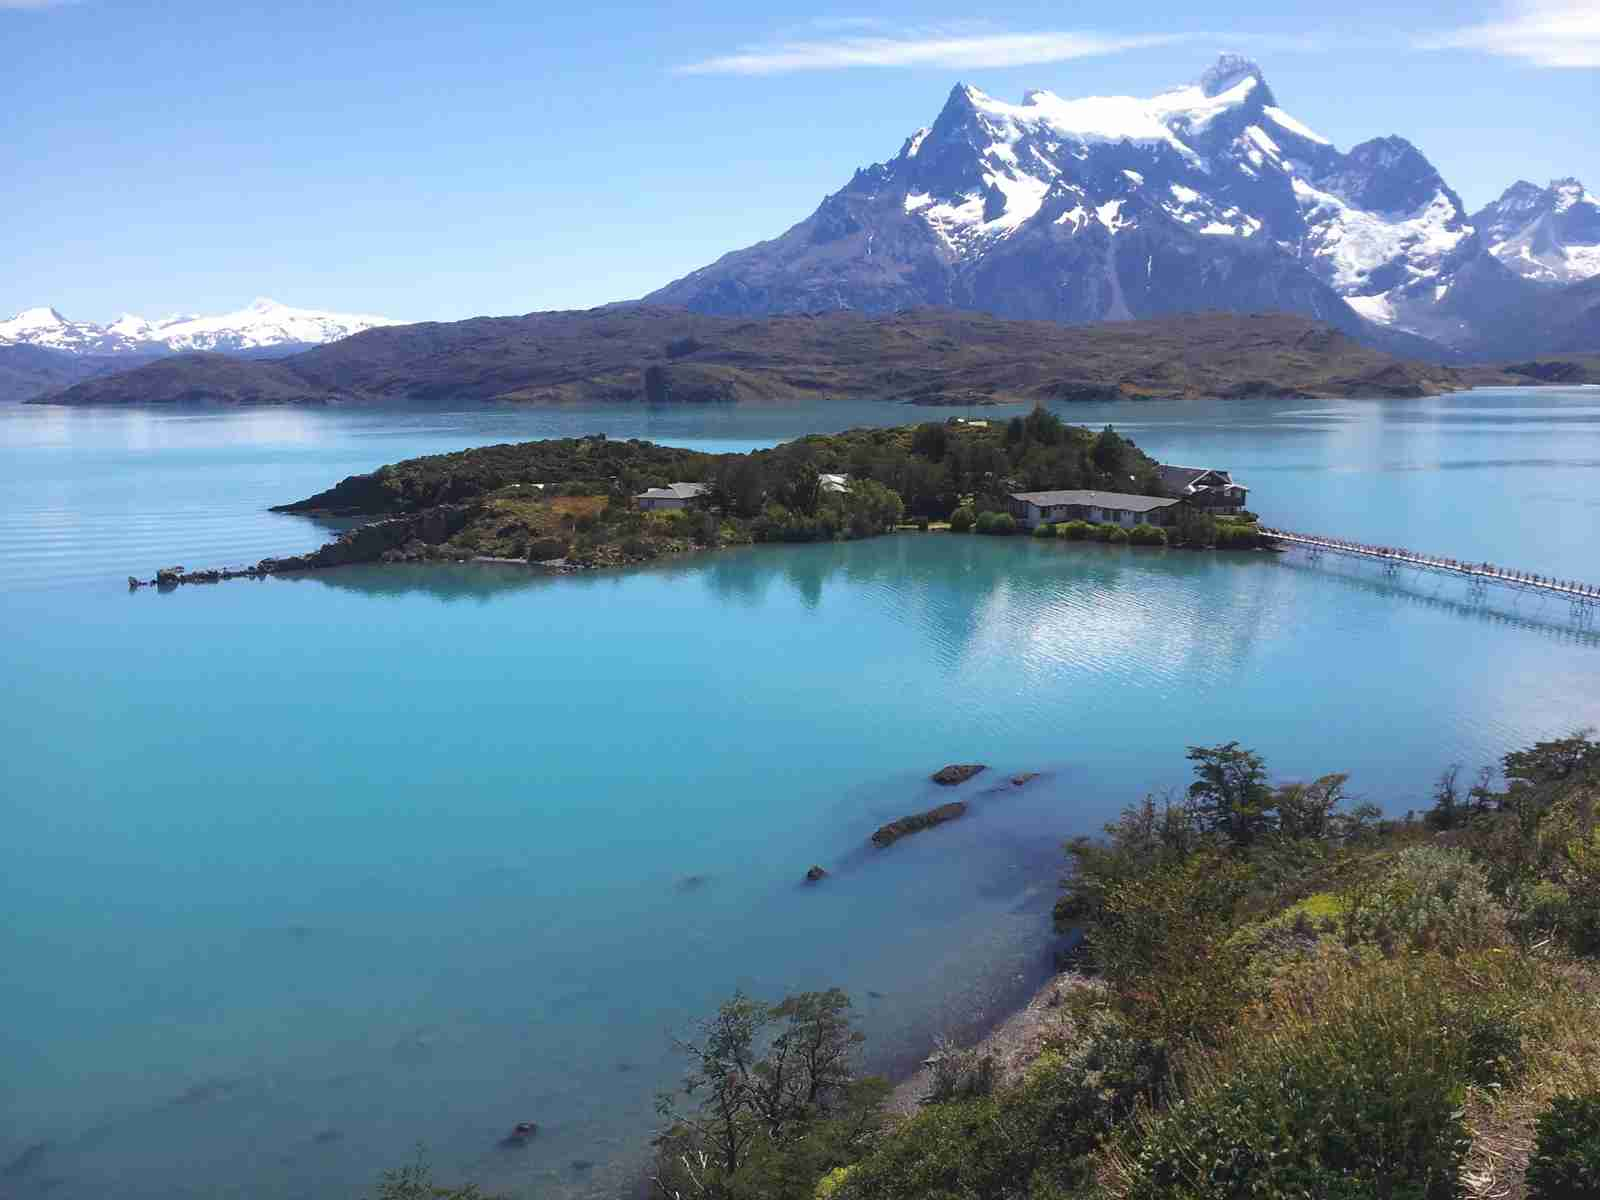 Chilean Patagonia, one of the most beautiful places on earth. (Photo by Jorge Pea / EyeEm / Getty Images)